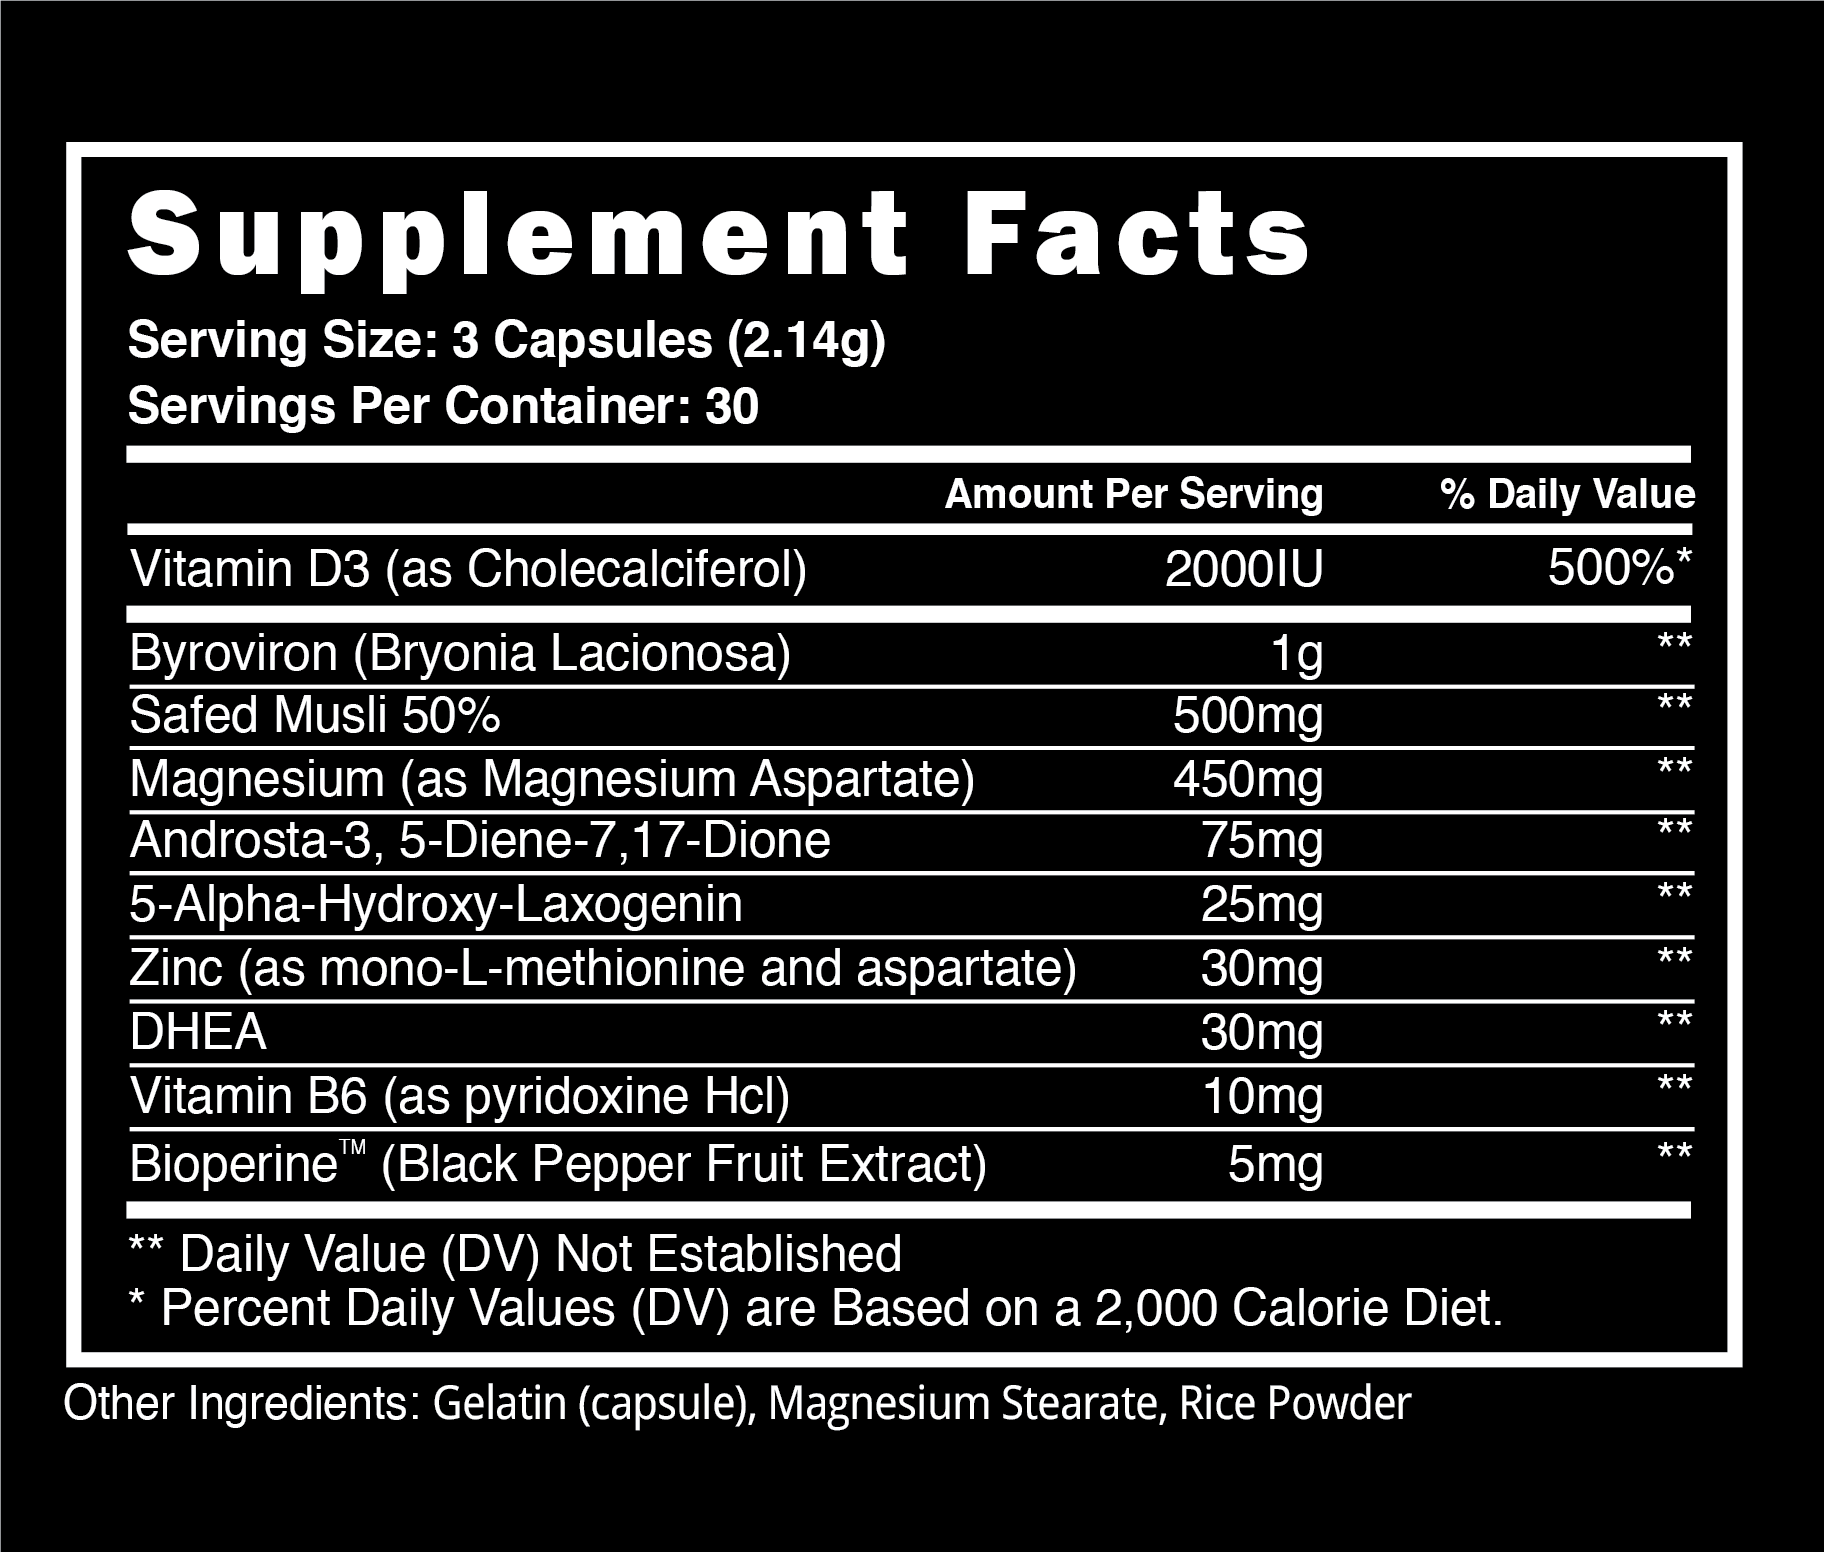 Androsta 3 5 Diene 7 17 Dione Side Effects steel supplements alpha af